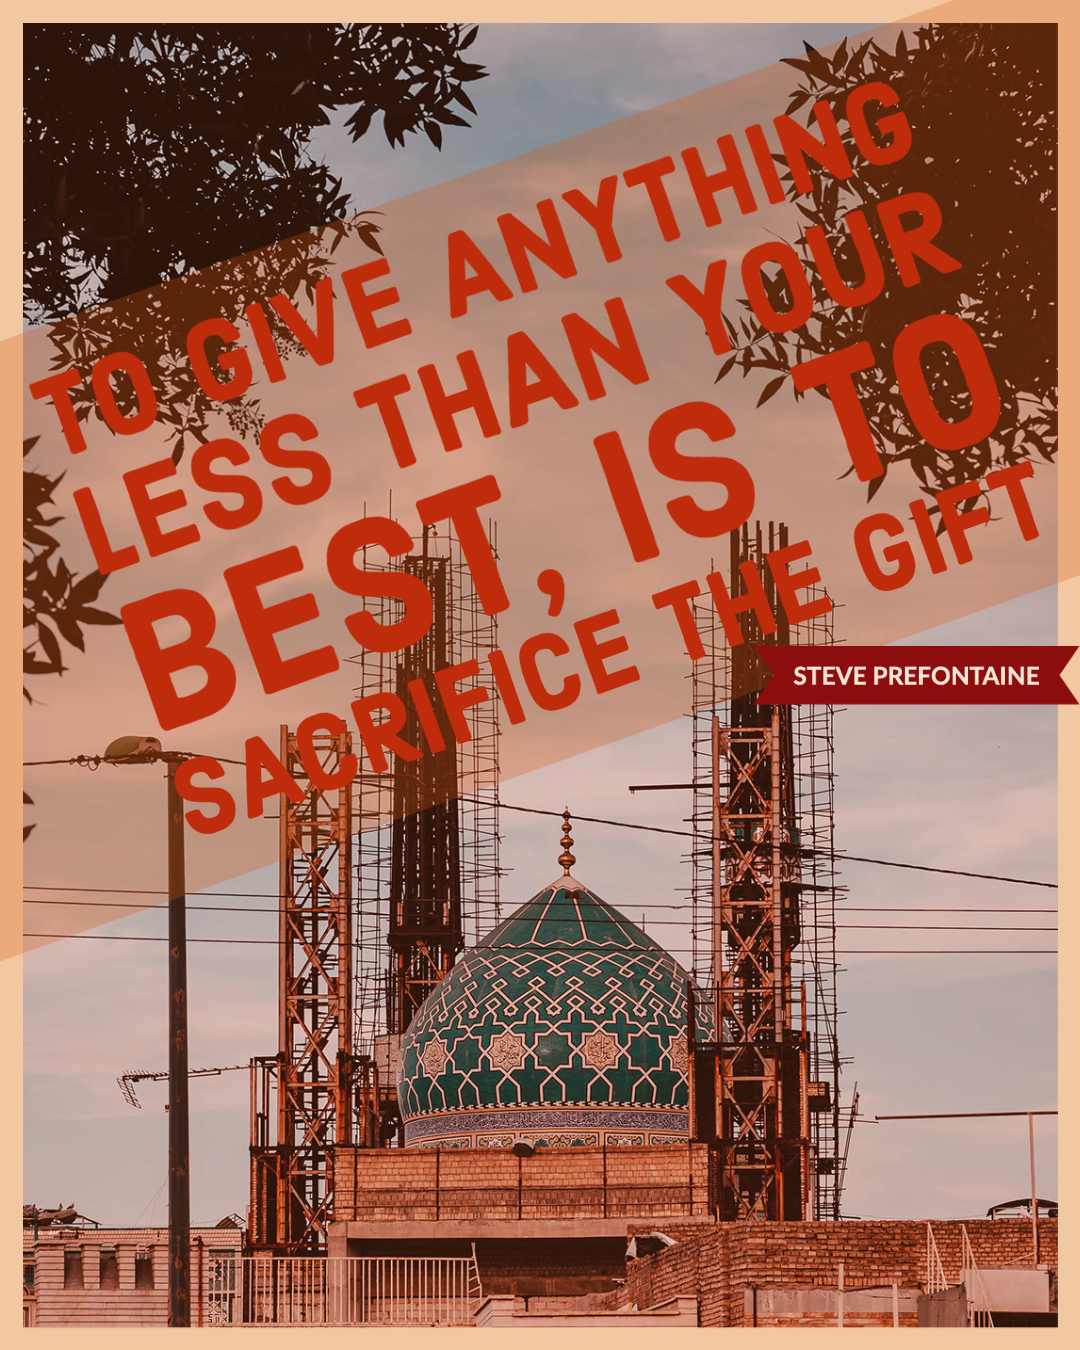 To give anything less than your best, is to sacrifice the gift